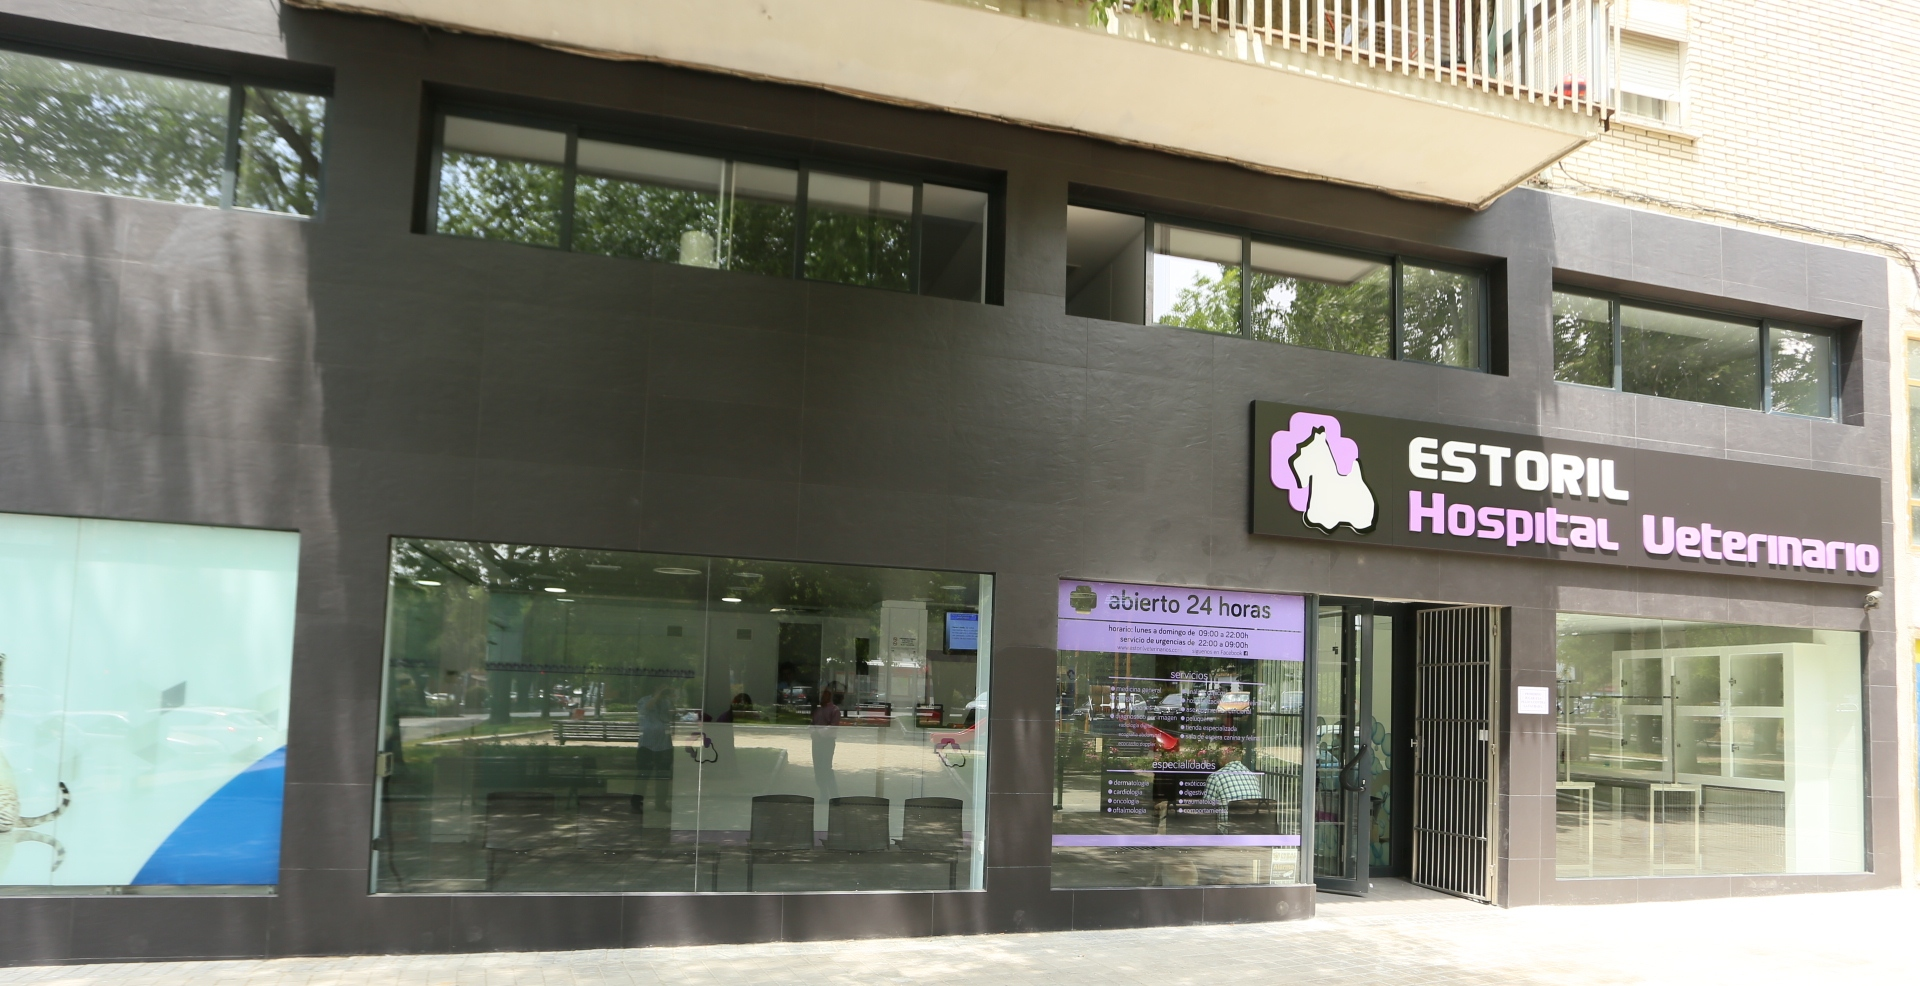 HOSPITAL VETERINARIO ESTORIL